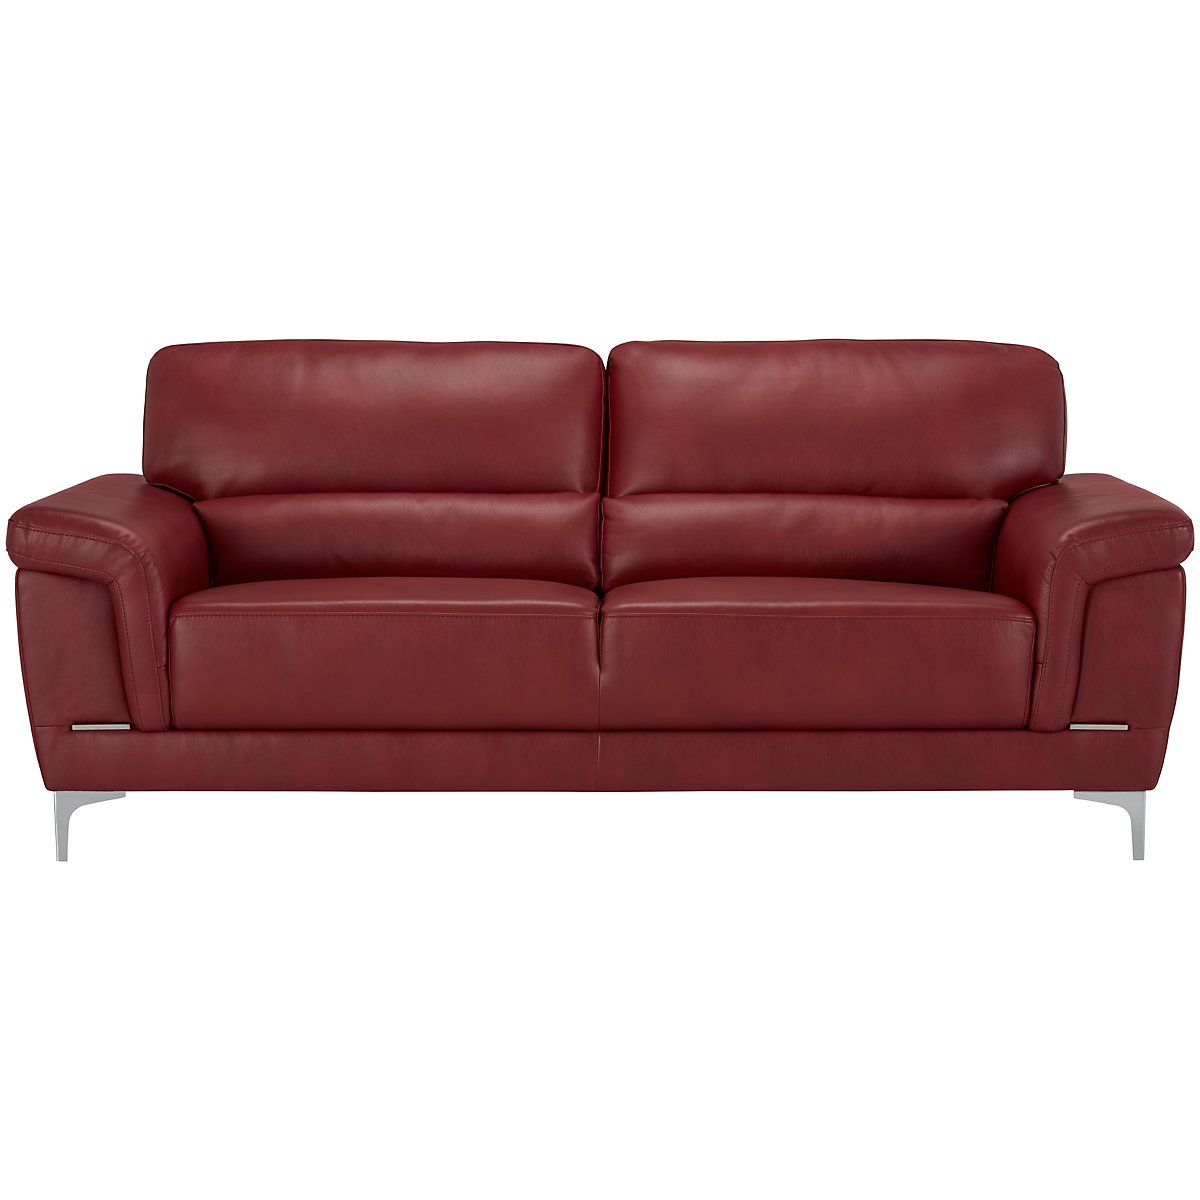 City furniture enzo red microfiber sofa for Microfiber sectional sofa